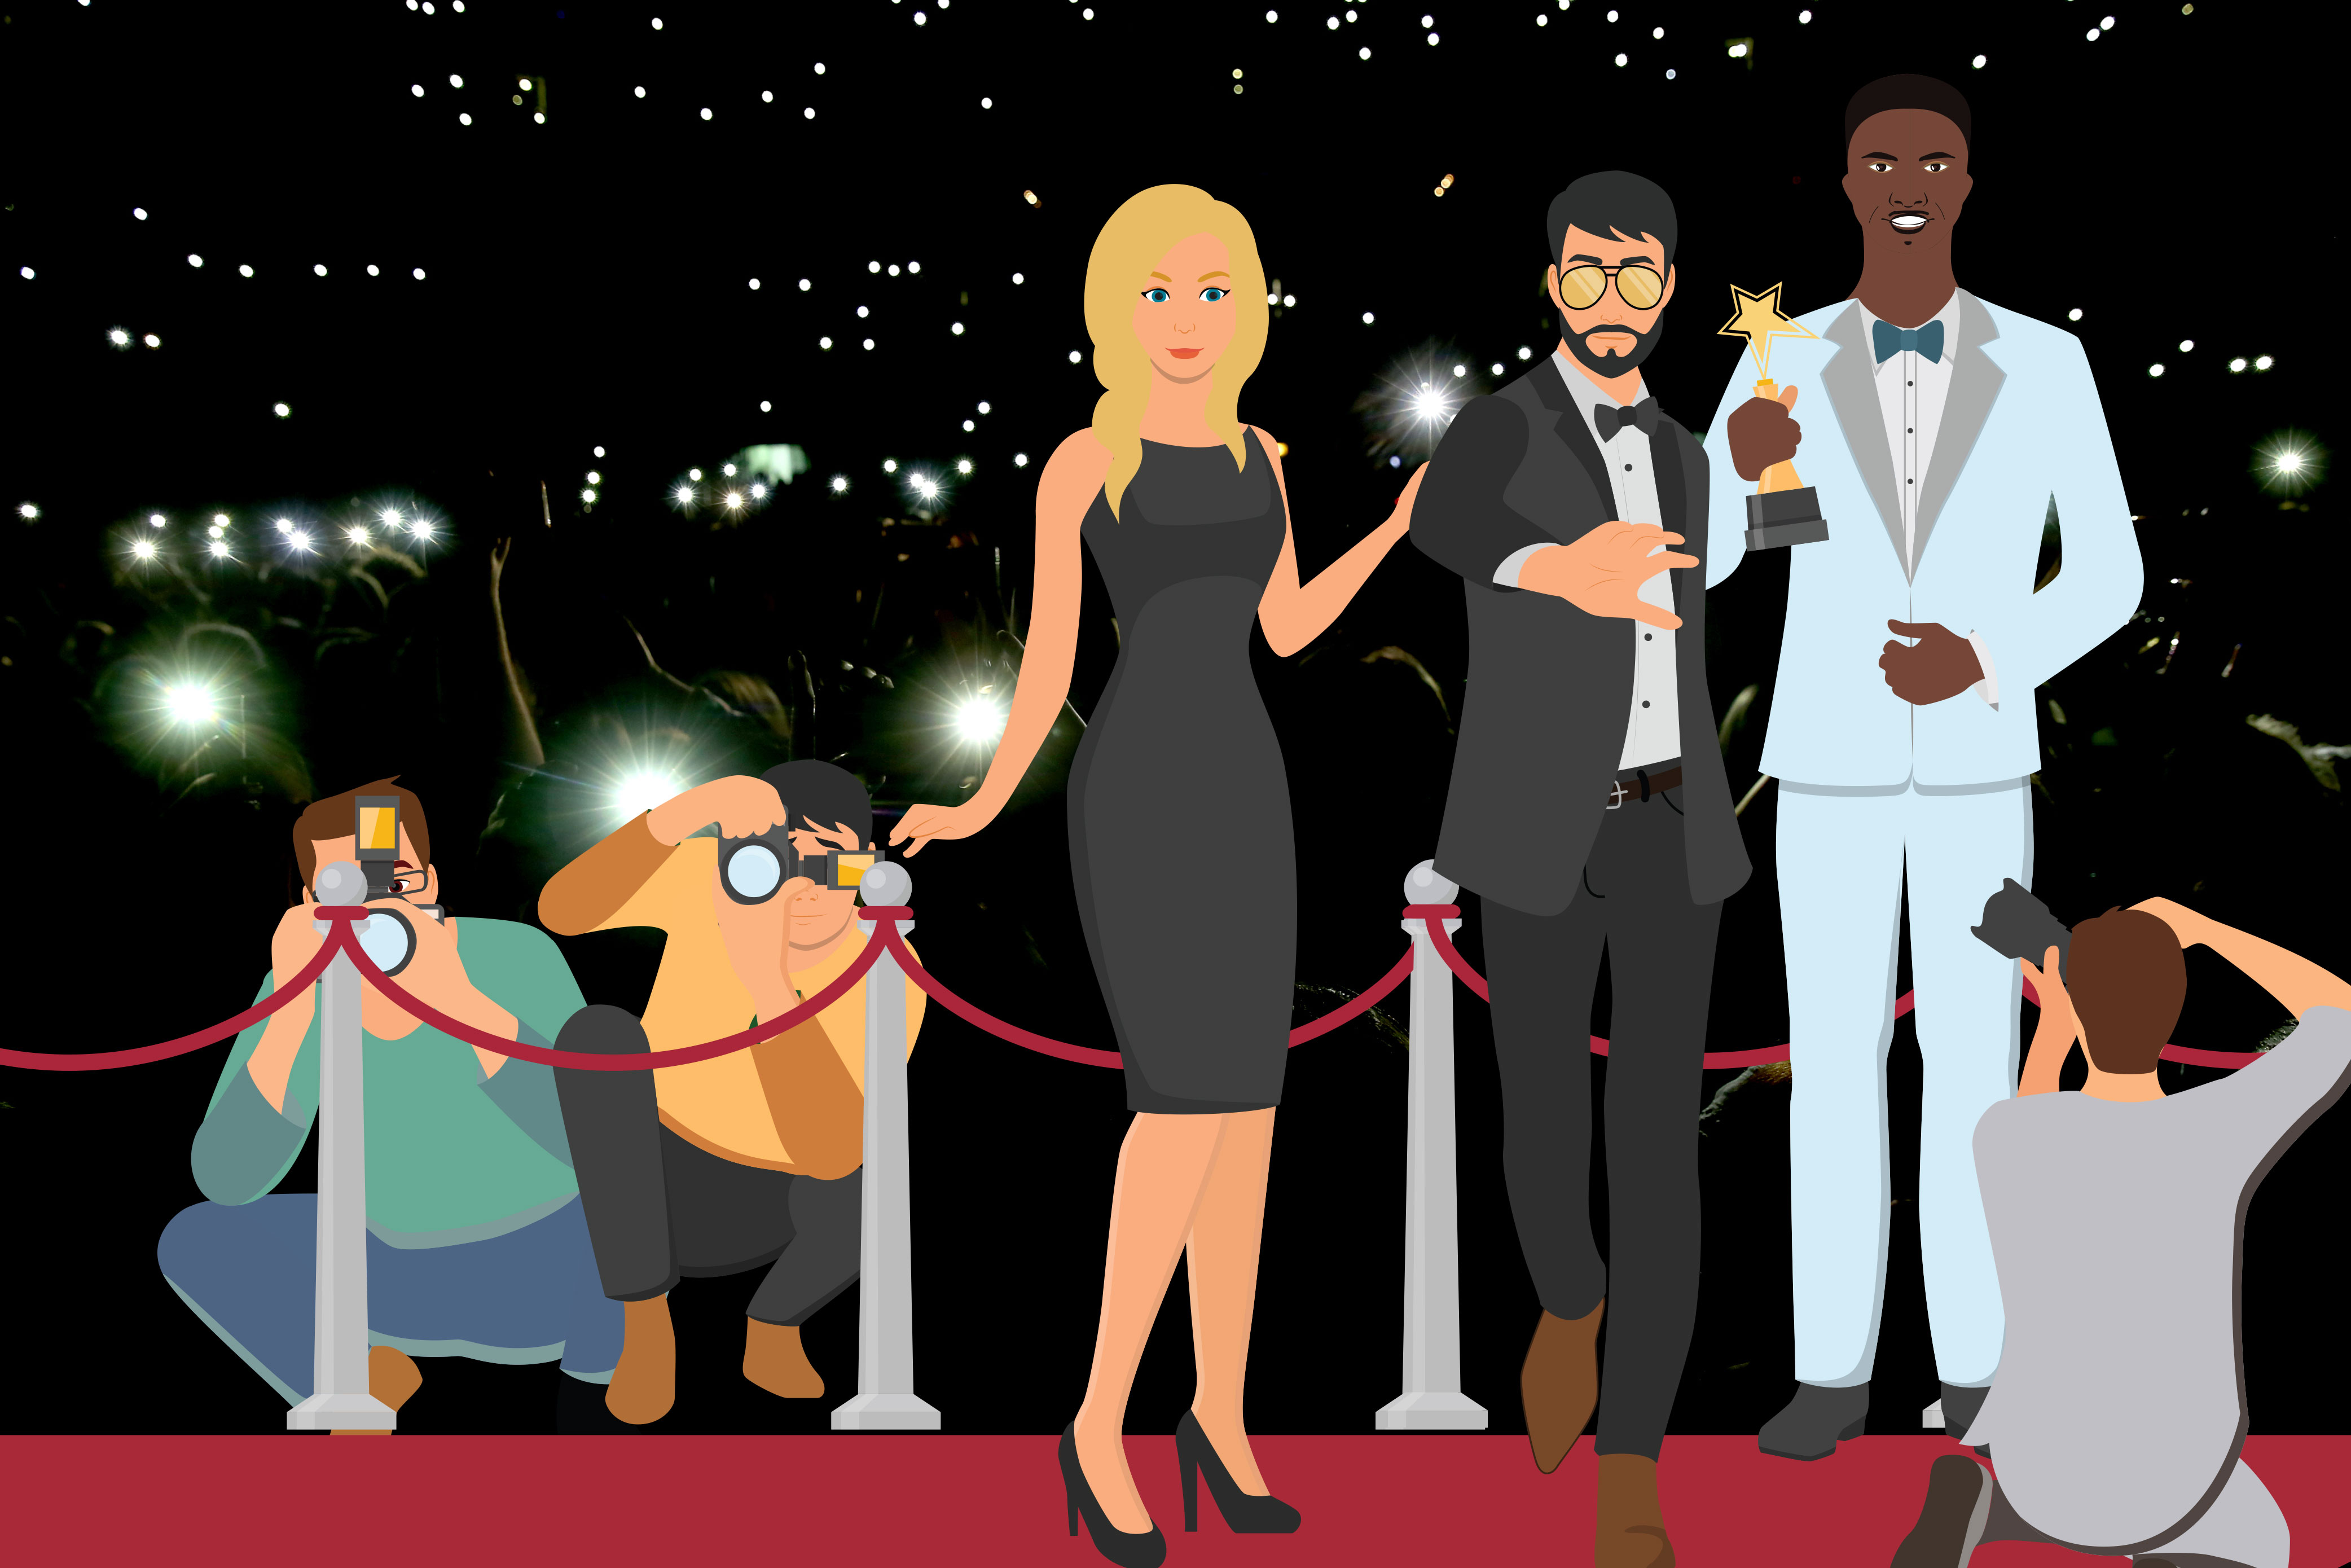 Three famous deaf people on a red carpet posing for the cameras. They are clearly famous actors. Paparazzi are surrounding them. Lights shine in the distance.